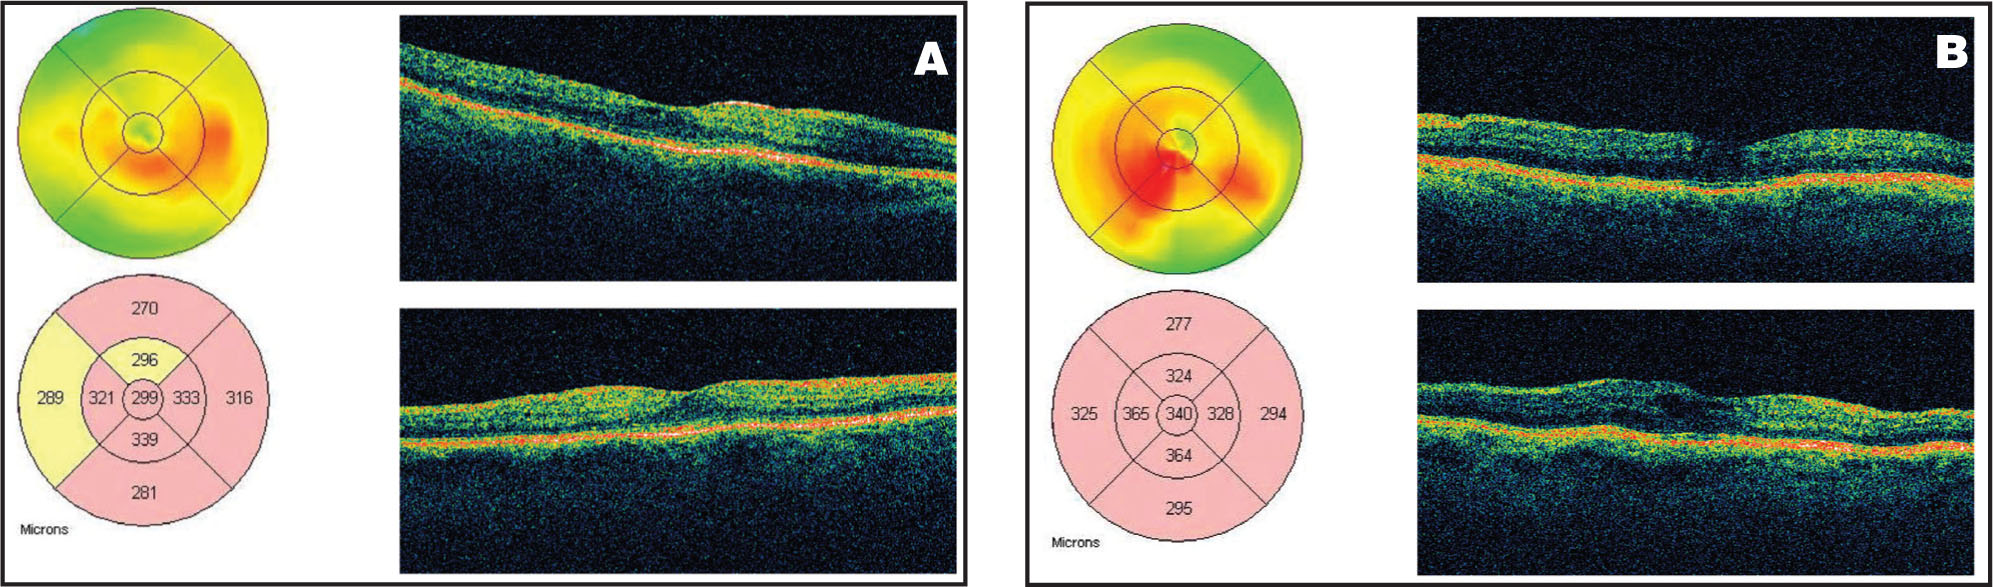 (A) OCT of the Right Eye in Case #2 at 3 Months Post Injection, Showing Improvement in Macular Thickening from 629 Microns to 299 Microns. (B) OCT of the Left Eye, Showing that the Macular Thickening Was Reduced from 739 Microns to 340 Microns at 3 Months After IVTA Injection.